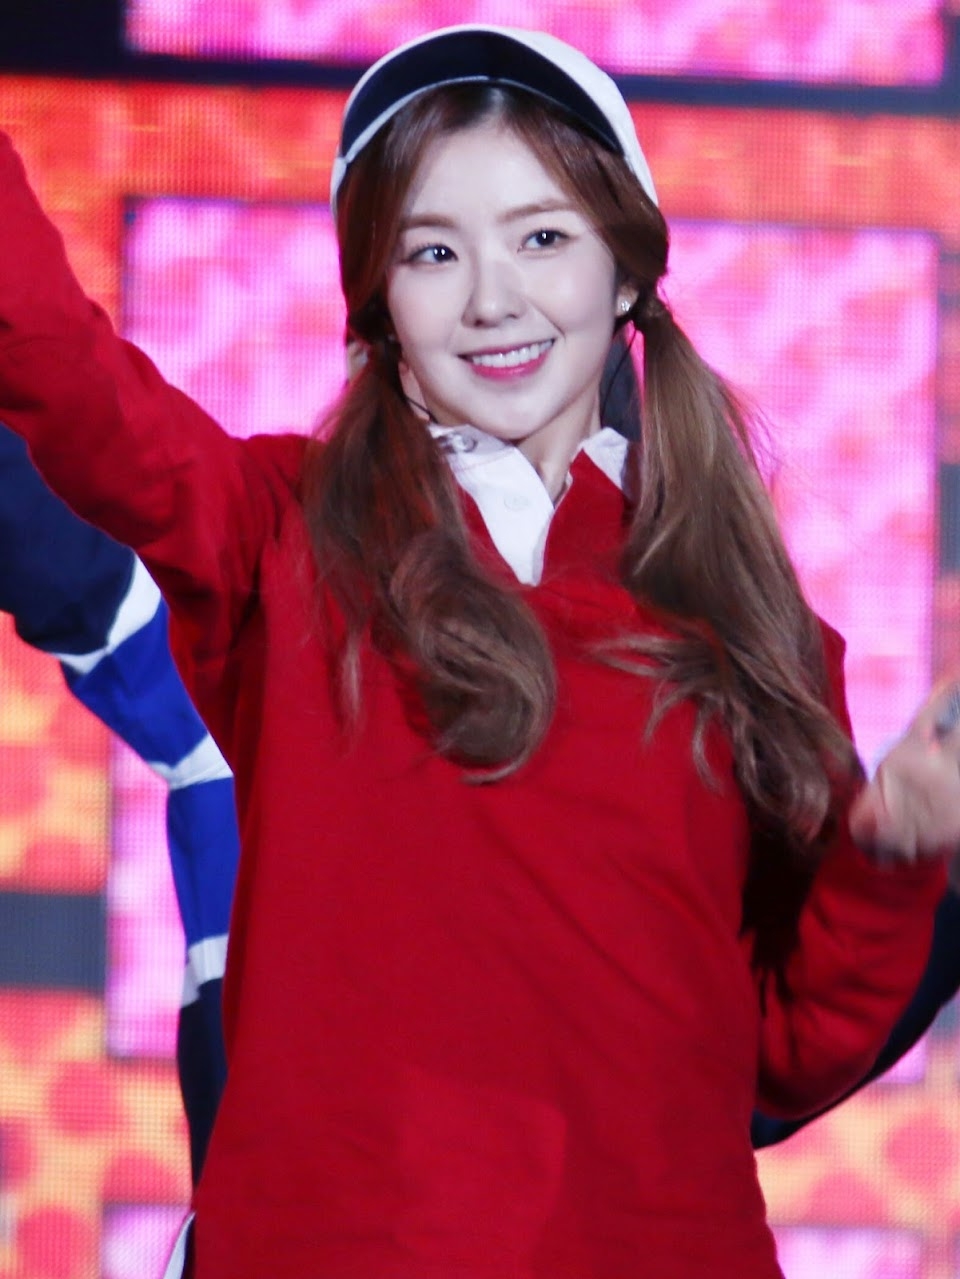 Irene_Bae_at_2015_Asia_Dream_Concert_in_October_31,_2015_(2)